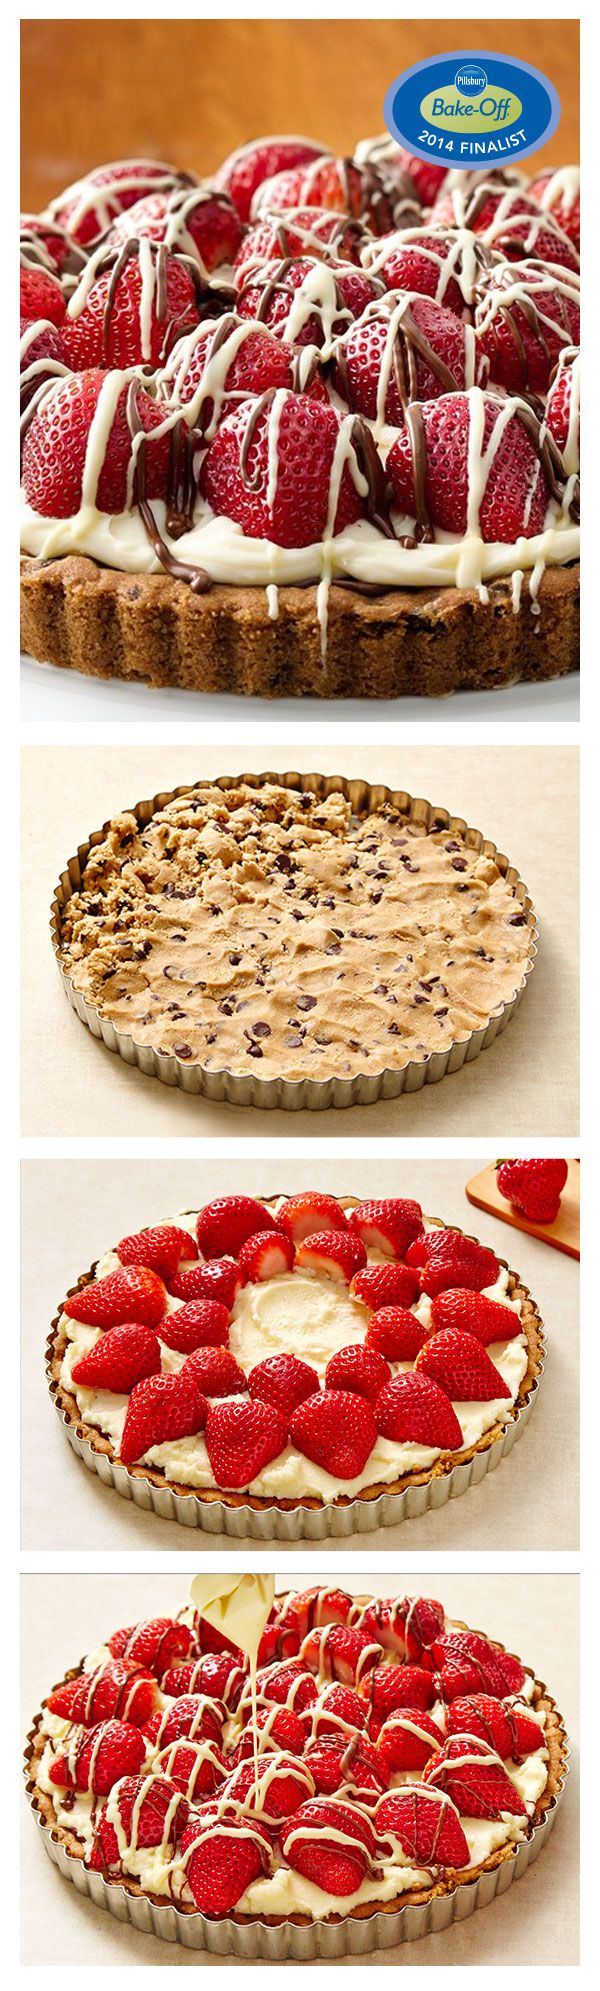 47th Bake-Off Contest Finalist: Strawberry-Mascarpone-Hazelnut Chocolate Tart by Pamela Shank from Parkersburg, WV